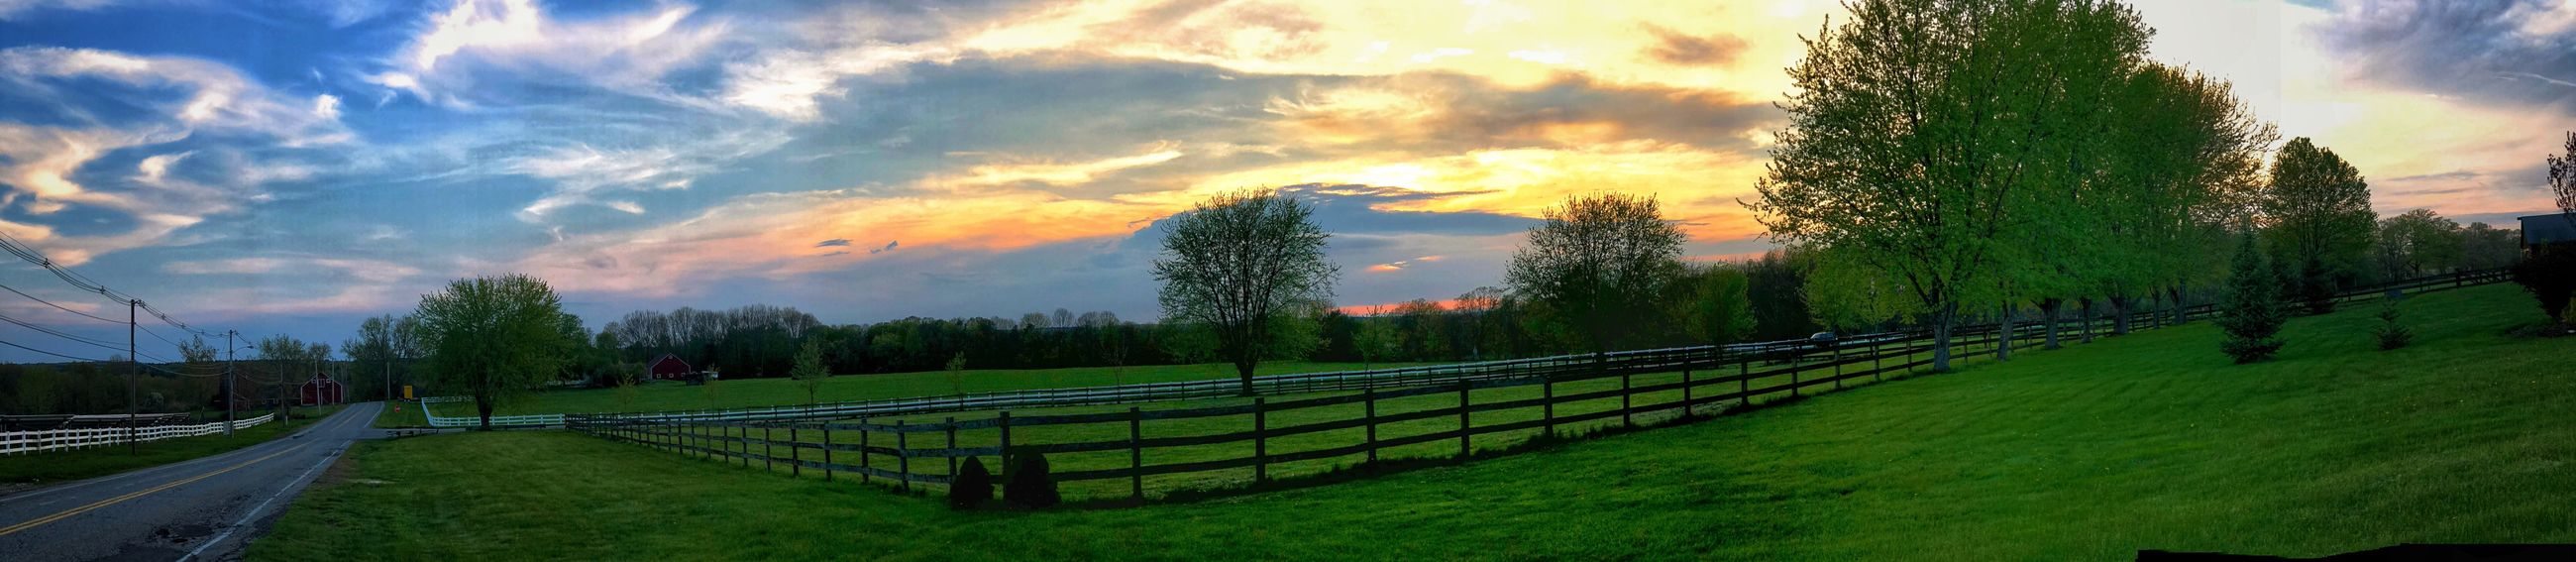 Panoramic View of a Sunset in Farm Country Plant Cloud - Sky Sky Tree Green Color Nature Beauty In Nature Barrier Sunset No People Field Growth Fence Boundary Tranquility Land Tranquil Scene